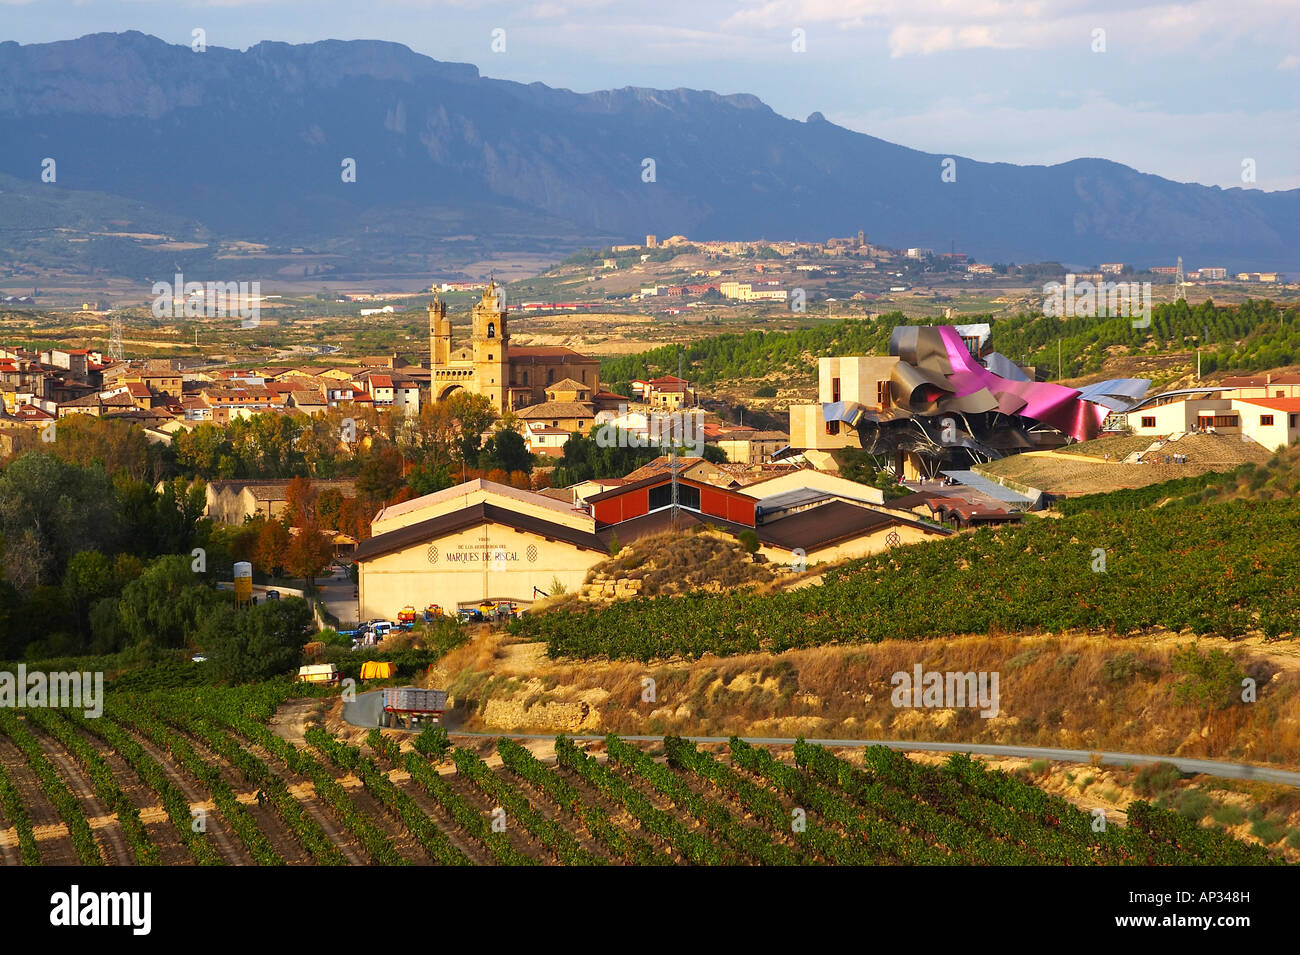 Hotel from architect frank gehry and bodegas marqu s de riscal stock photo royalty free image - Arquitecto bodegas marques de riscal ...